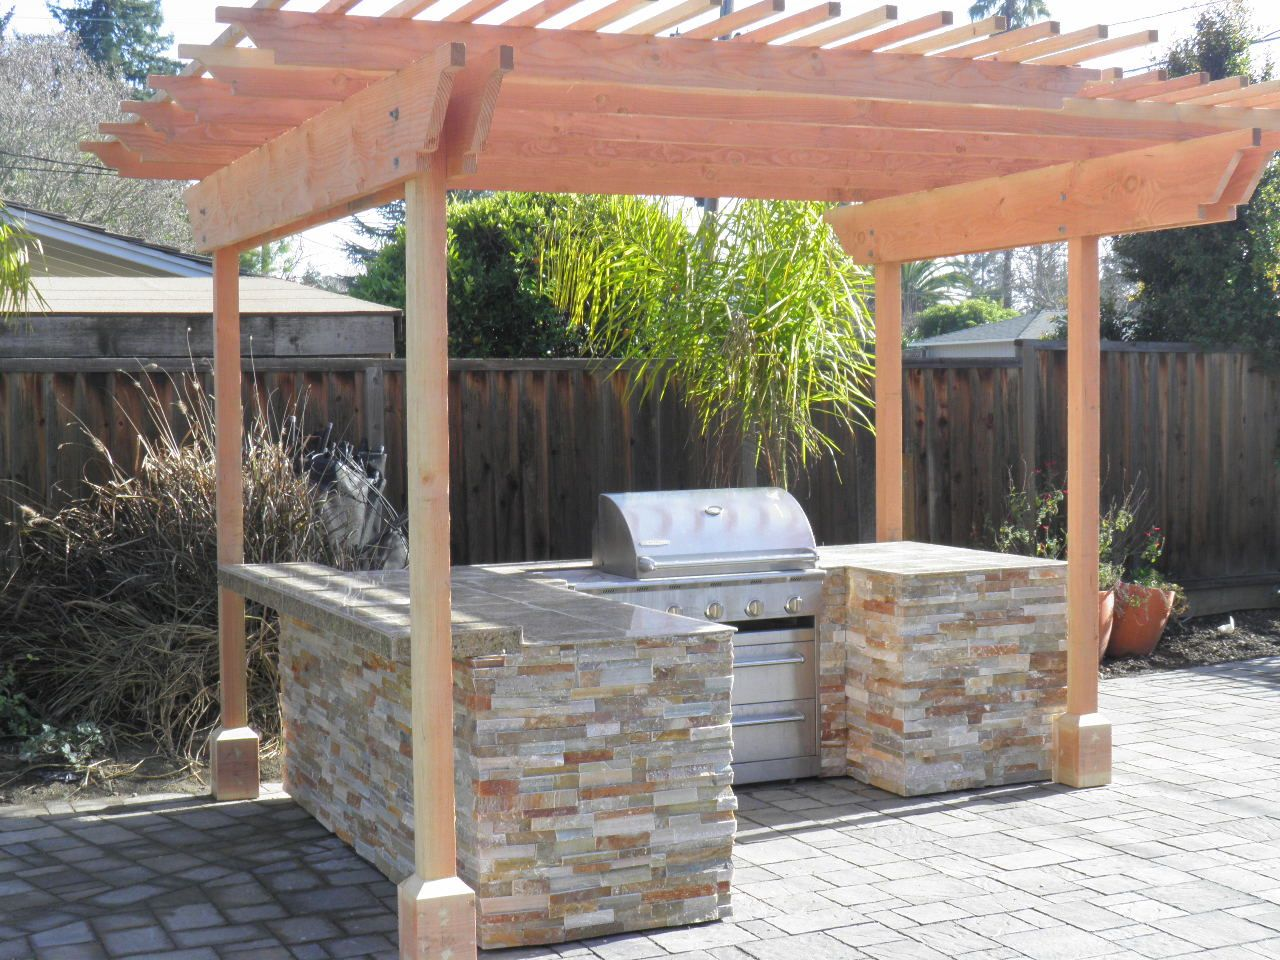 image detail for kitchen island build in bbq grill build to suit outdoor kitchen island on outdoor kitchen island id=87710